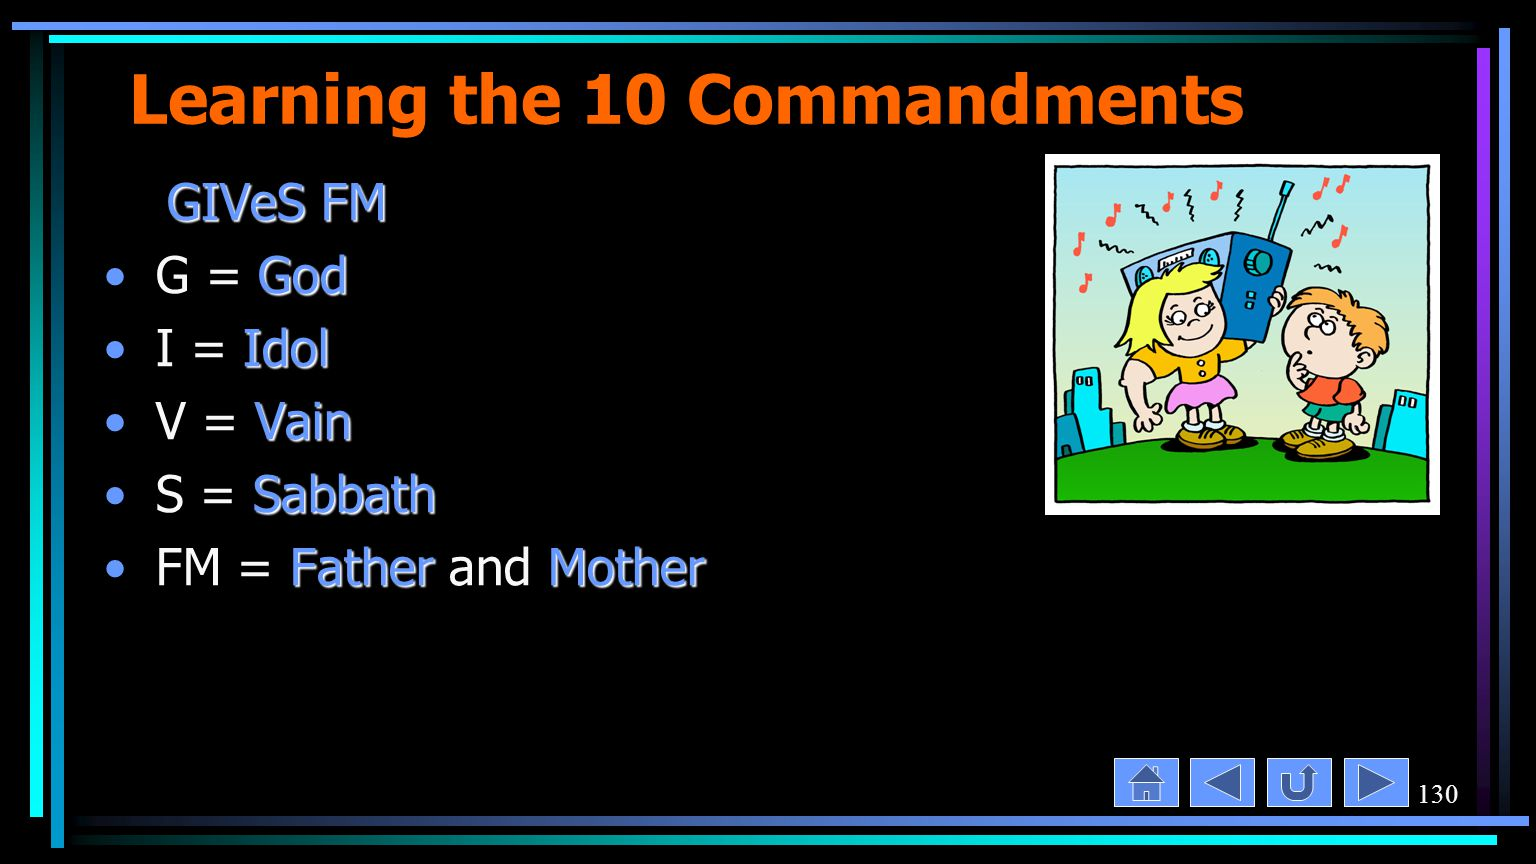 130 Learning the 10 Commandments GIVeS FM GIVeS FM GodG = God IdolI = Idol VainV = Vain SabbathS = Sabbath FatherMotherFM = Father and Mother